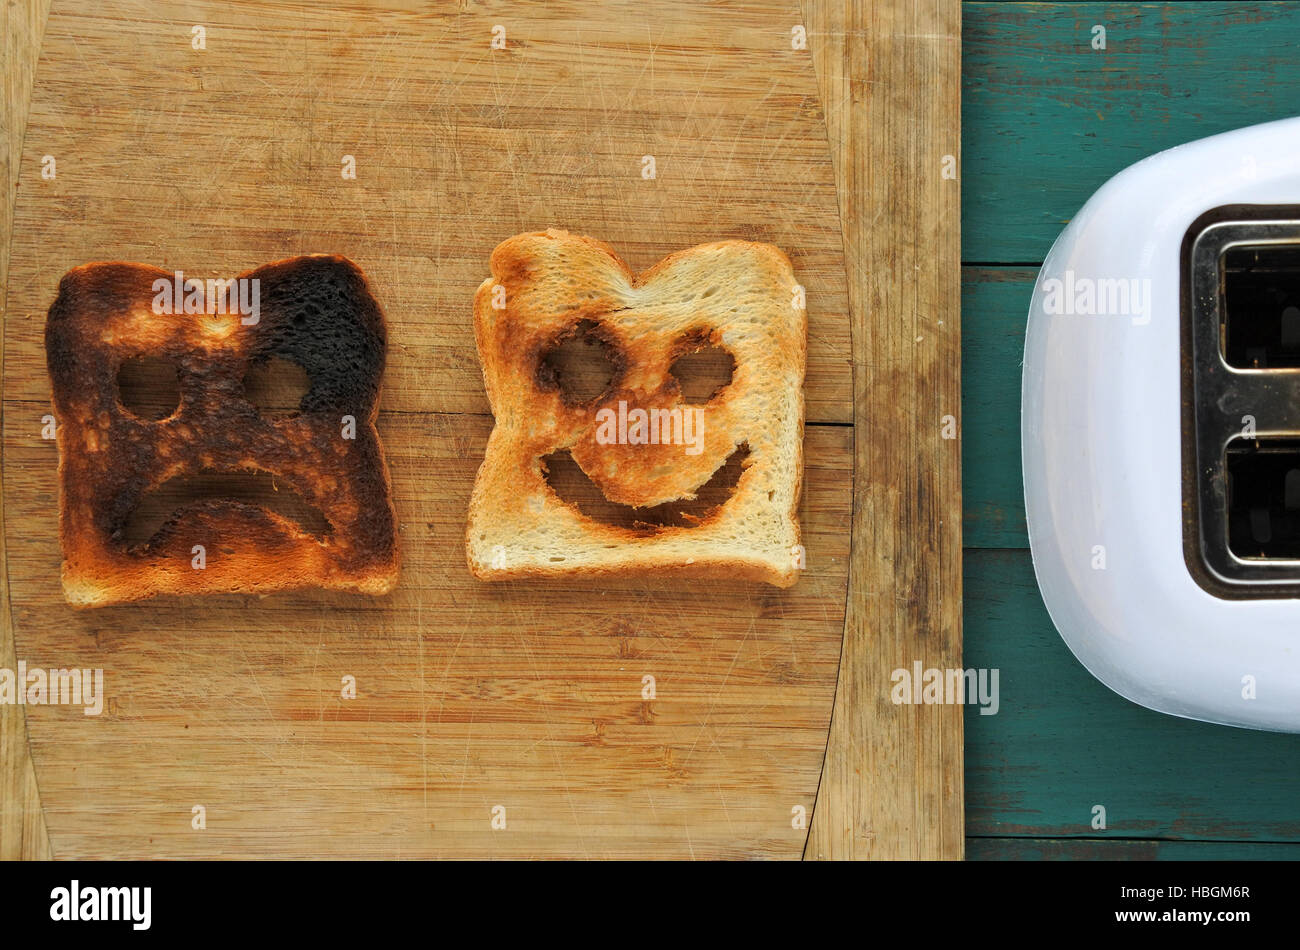 Flat lay view of two slices of toasted bread on a wooden board beside a toaster. One is burned and one is well done. - Stock Image